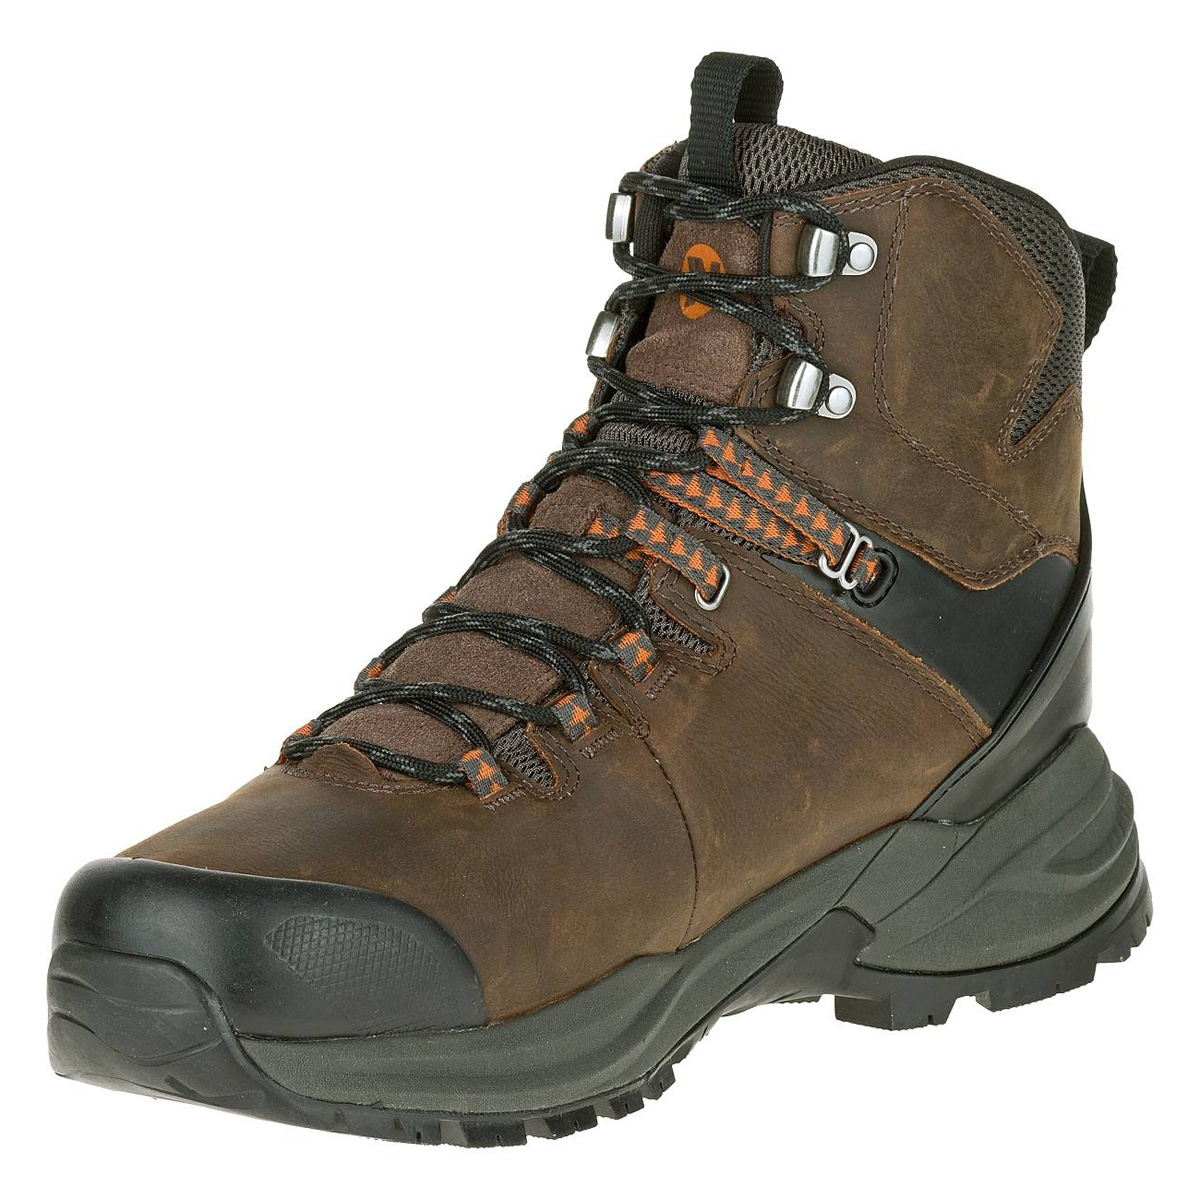 8abd5781fb9 Merrell Phaserbound Waterproof Walking Boots (Men's) - Clay